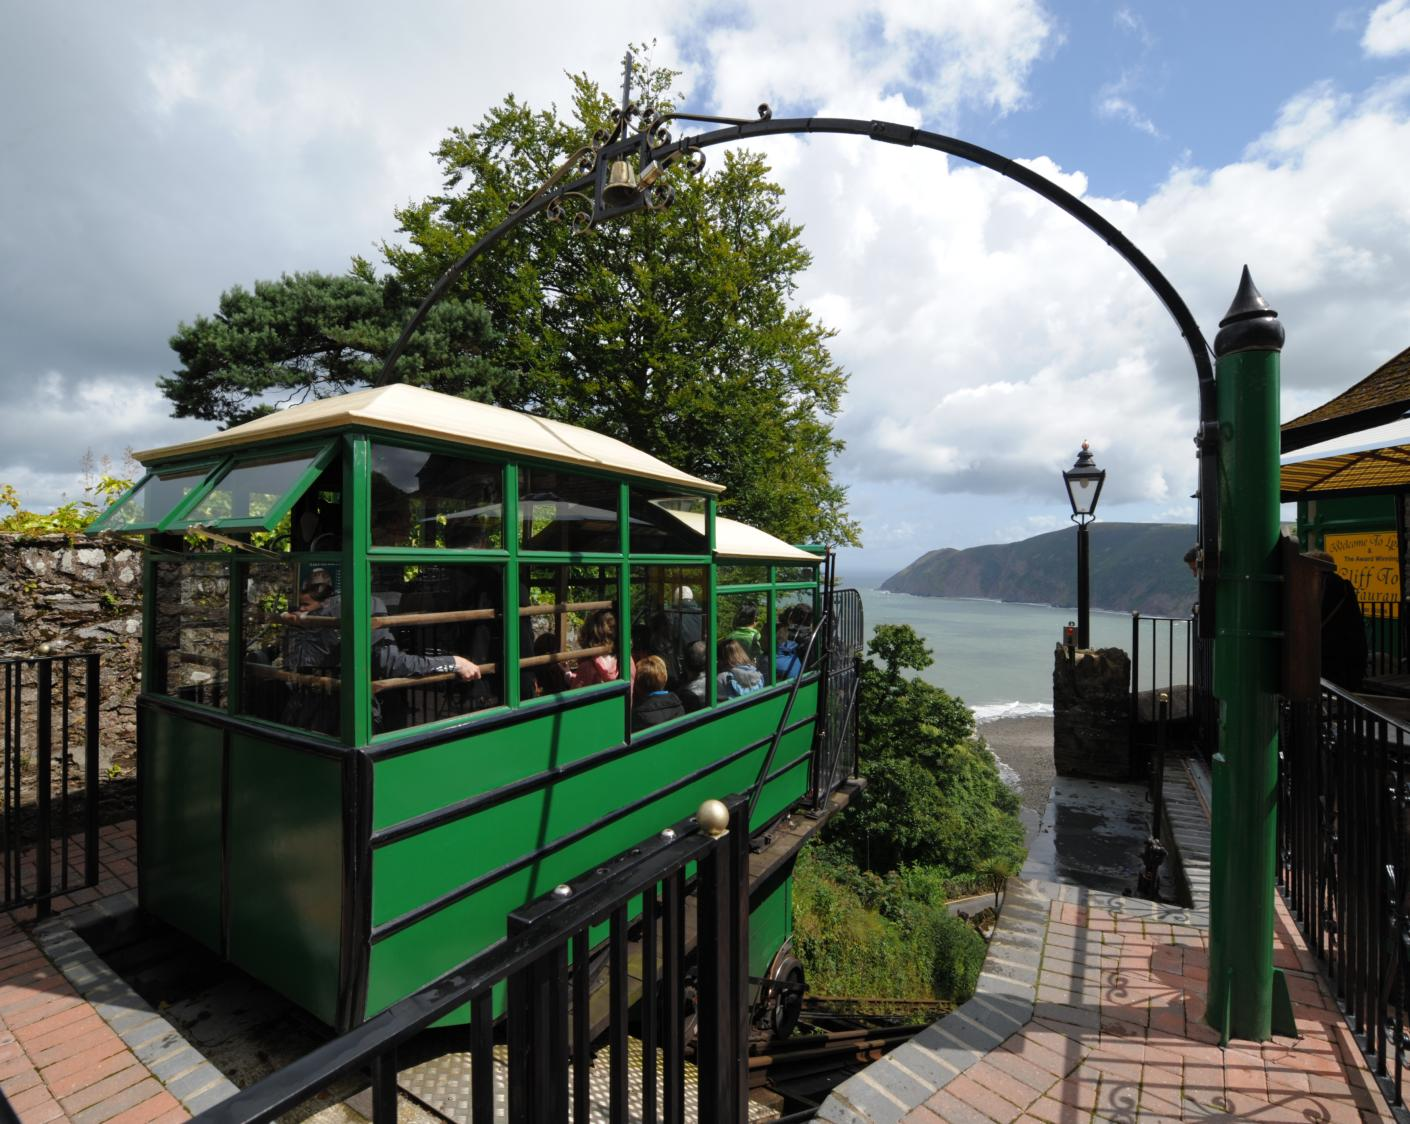 Lyn Valley Classic – Huge classic car event in Lynton & Lynmouth